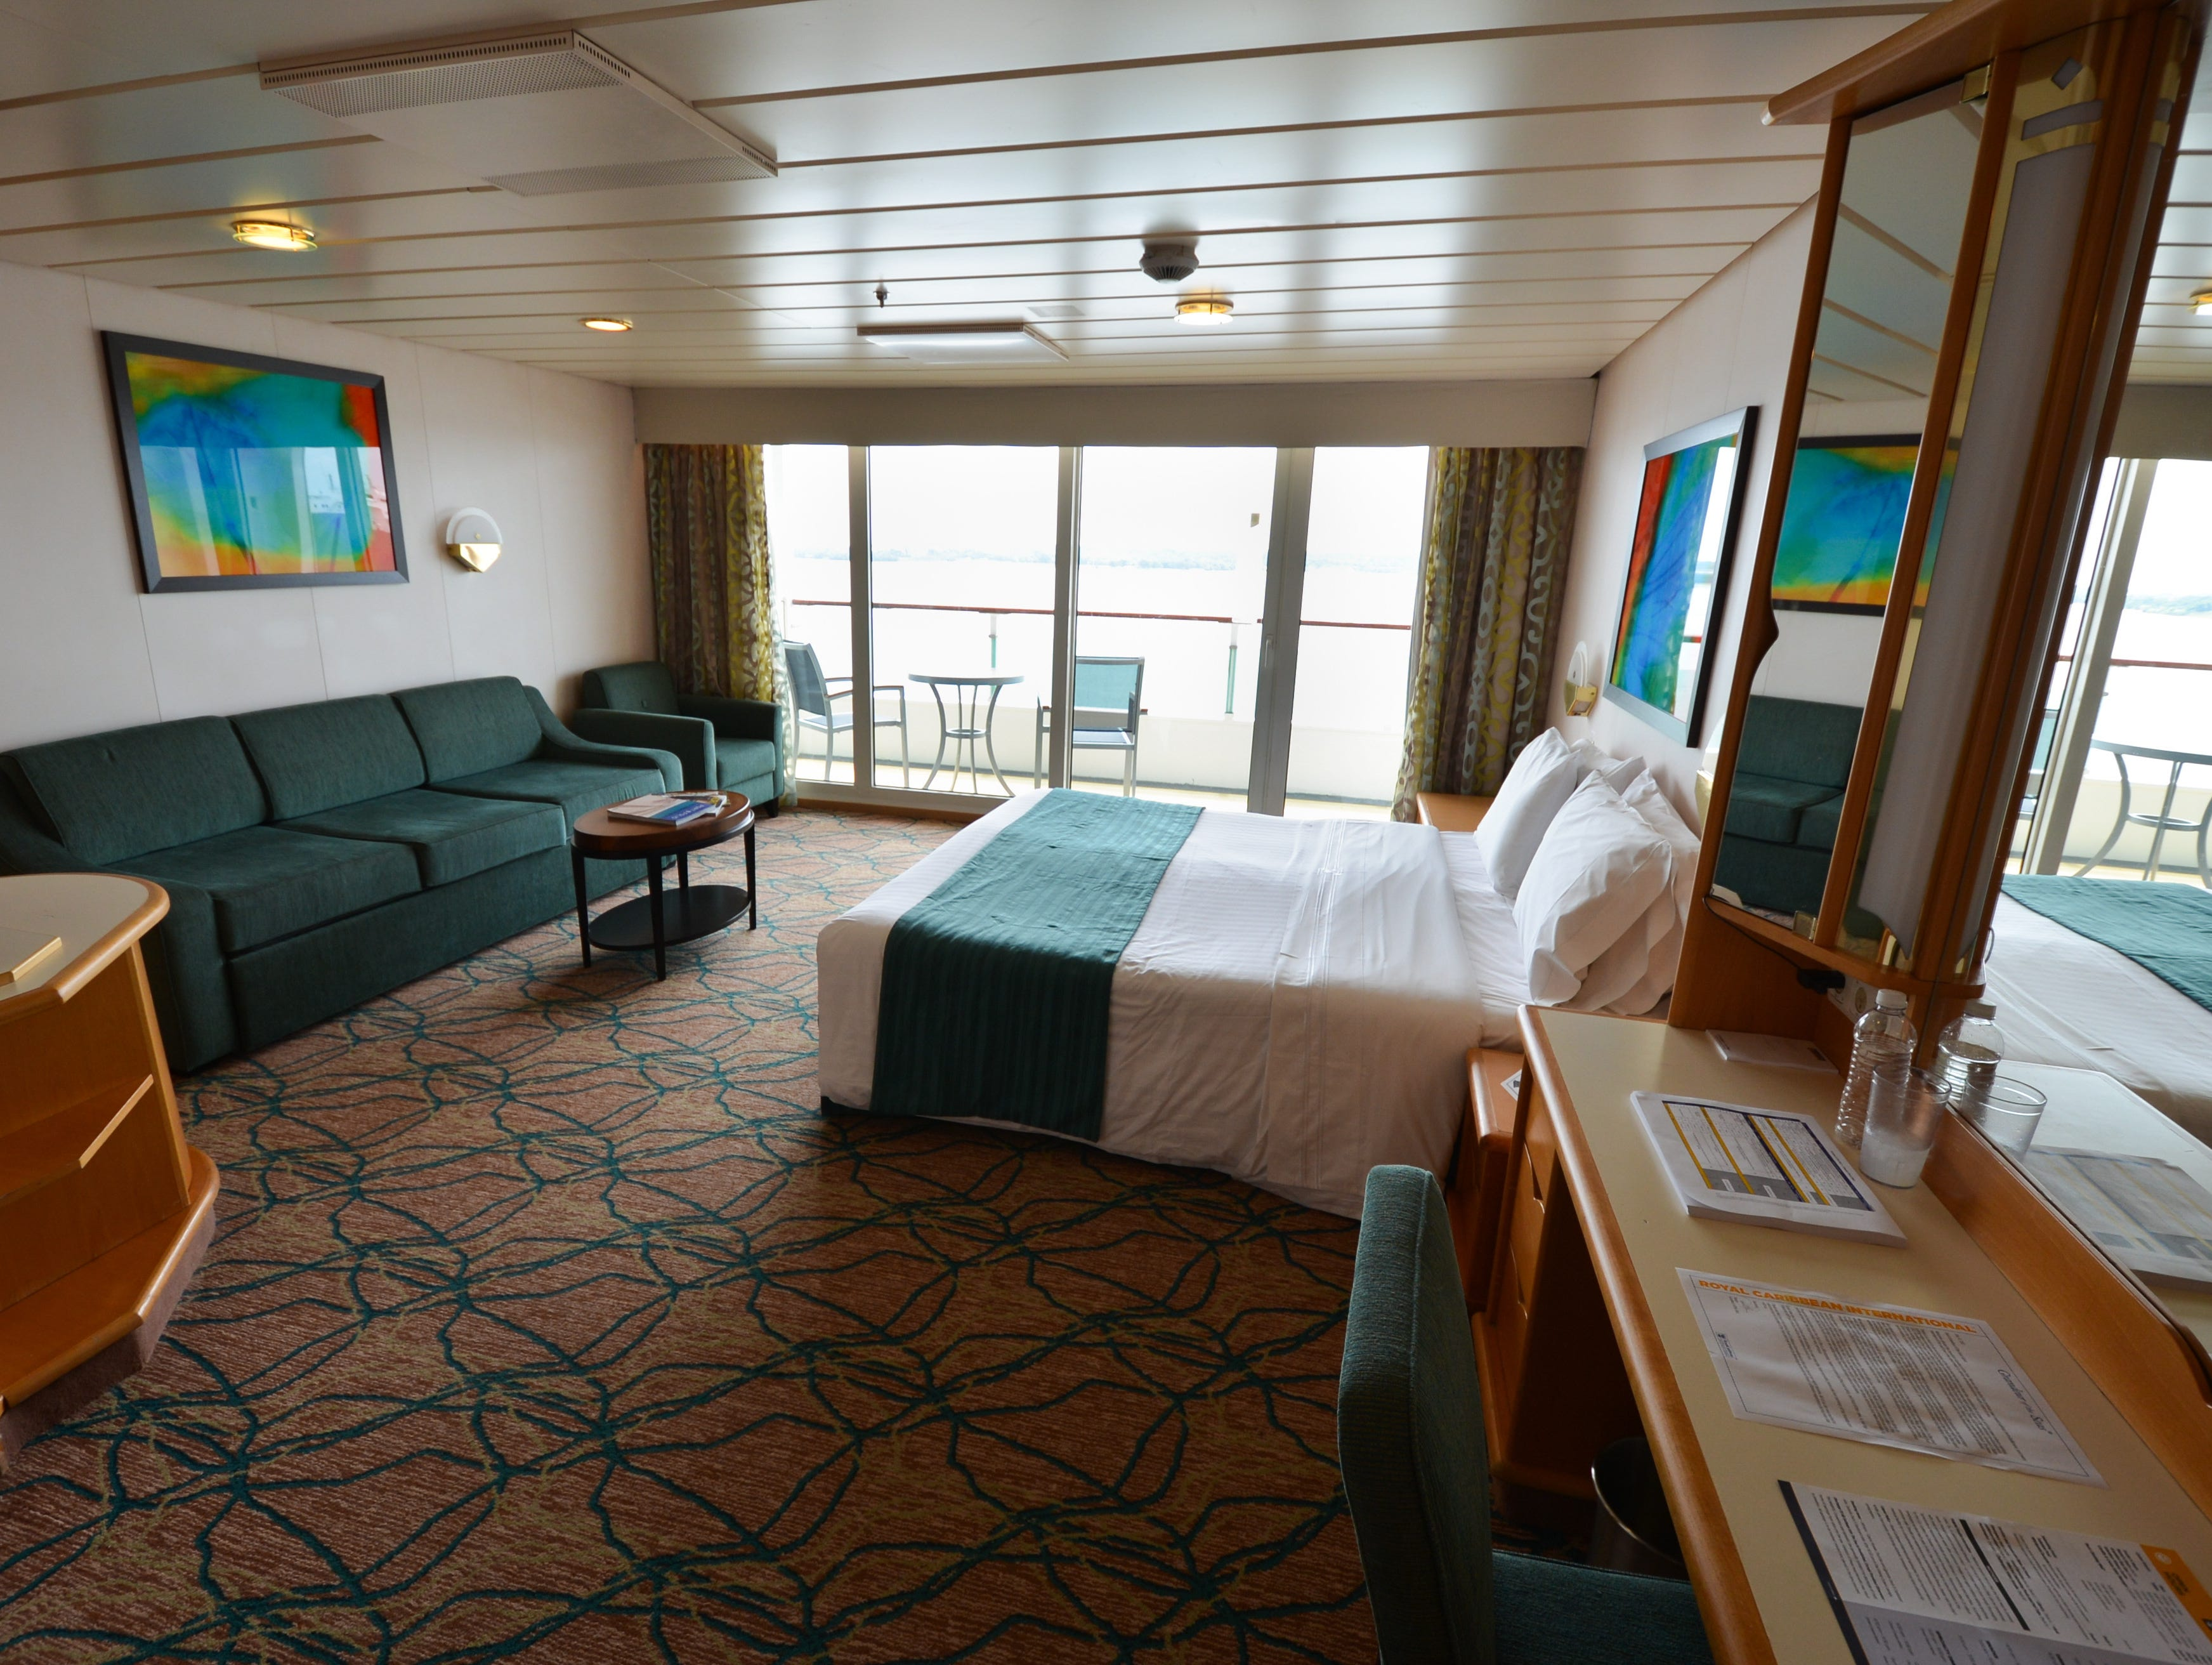 Grandeur of the Seas also has a range of accessible cabins designed for wheelchair access, including this Ocean View with Balcony.